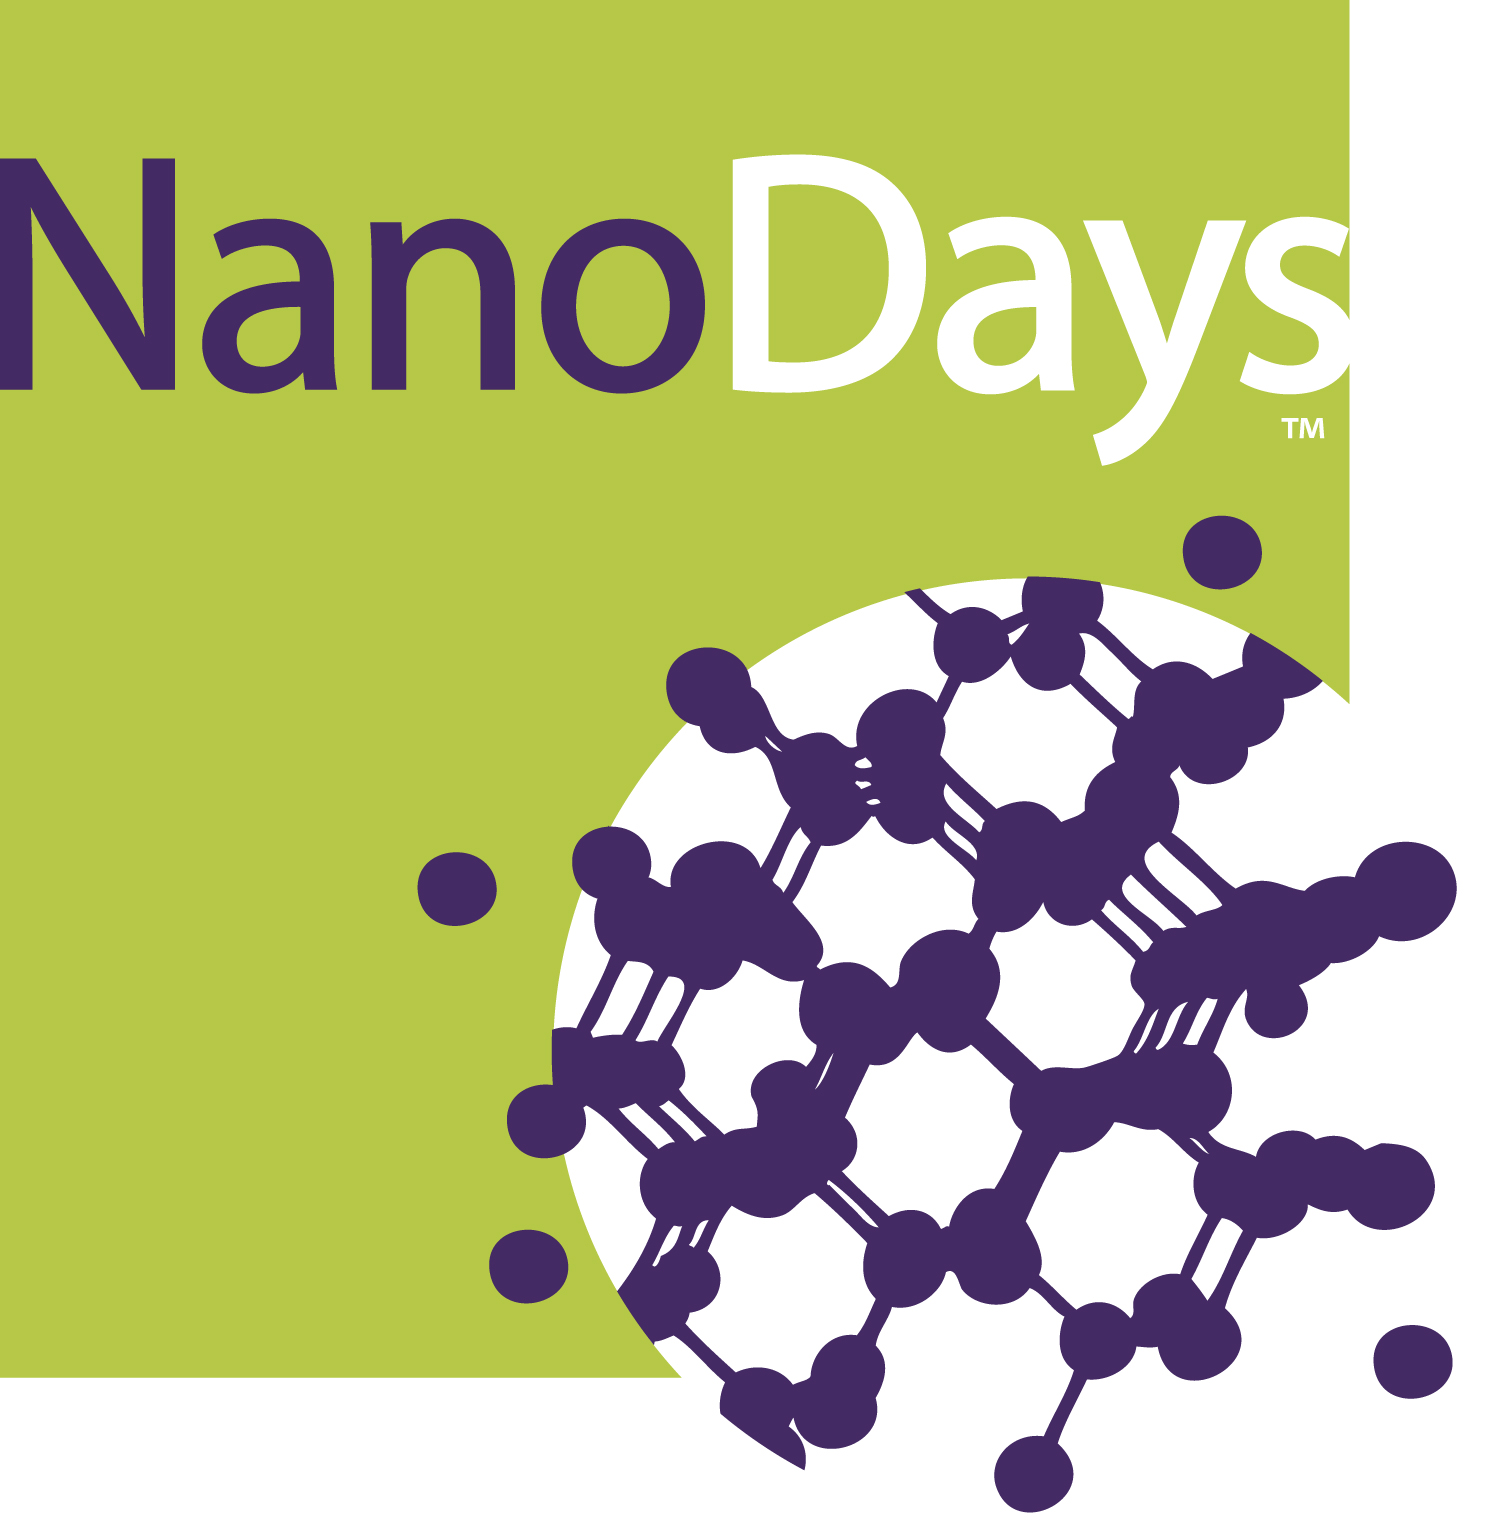 MSU celebrates NanoDays with free family events on April 3